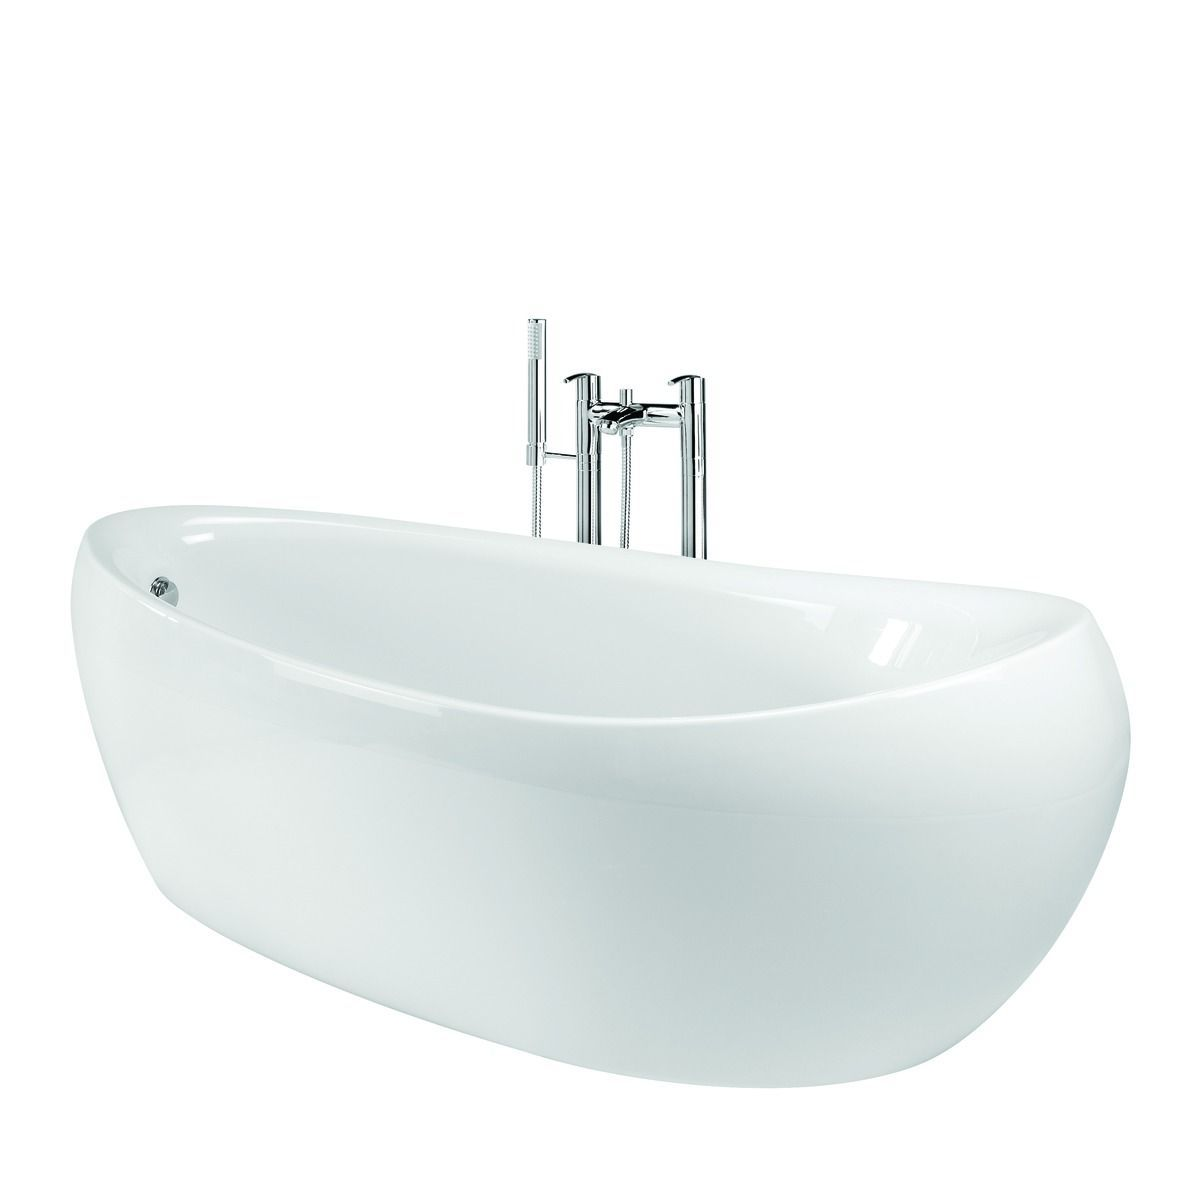 Wickes Cocoon Freestanding Bath White 1750mm | Wickes.co.uk ...